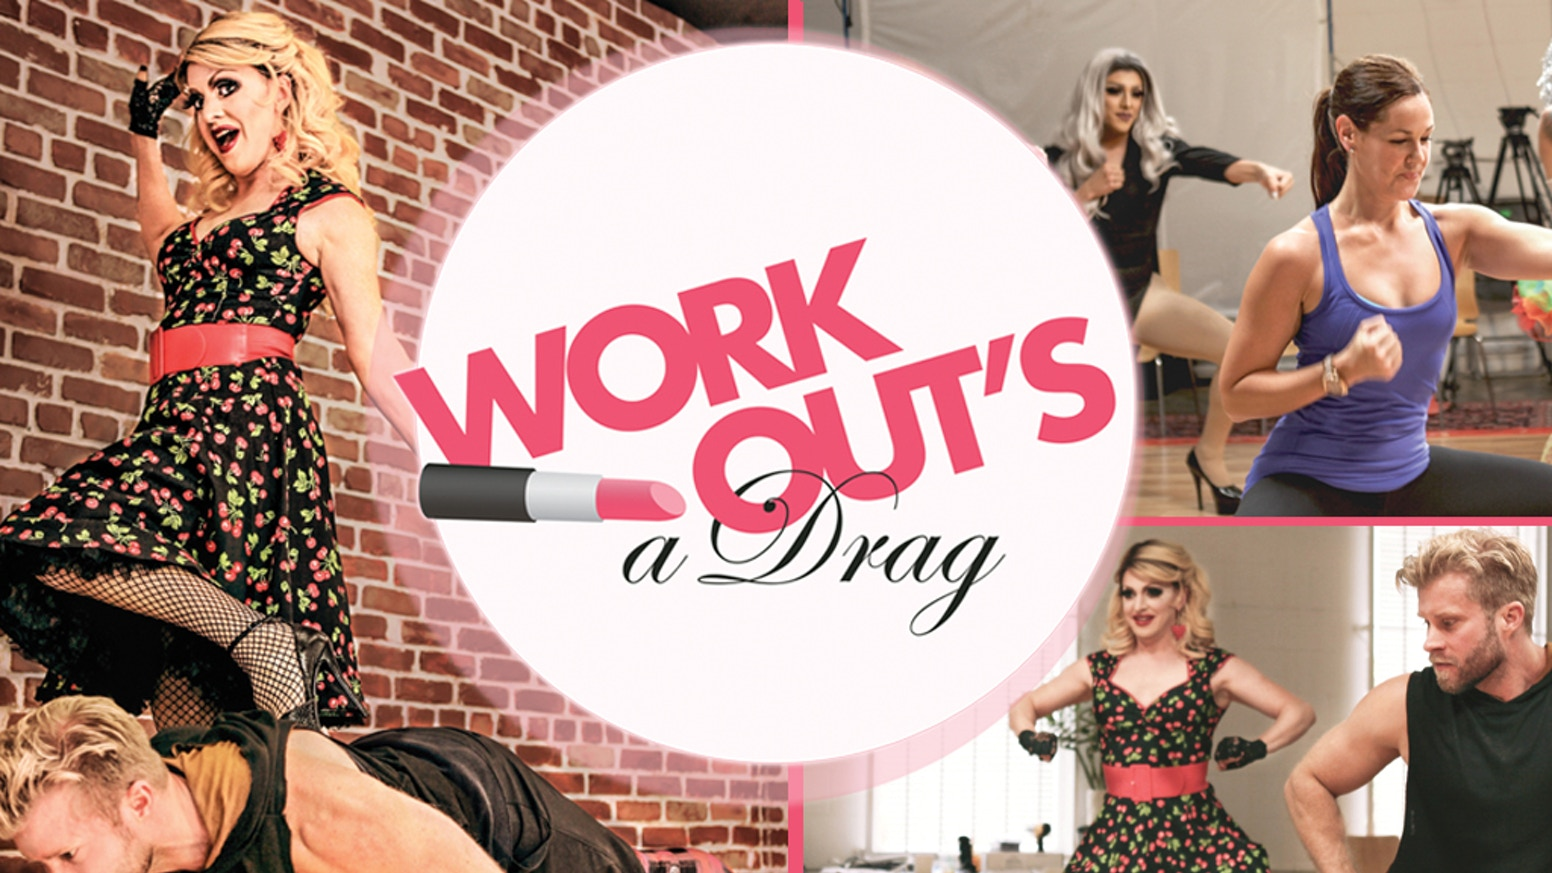 Working out shouldn't feel like a drag. It should make you feel like a queen!